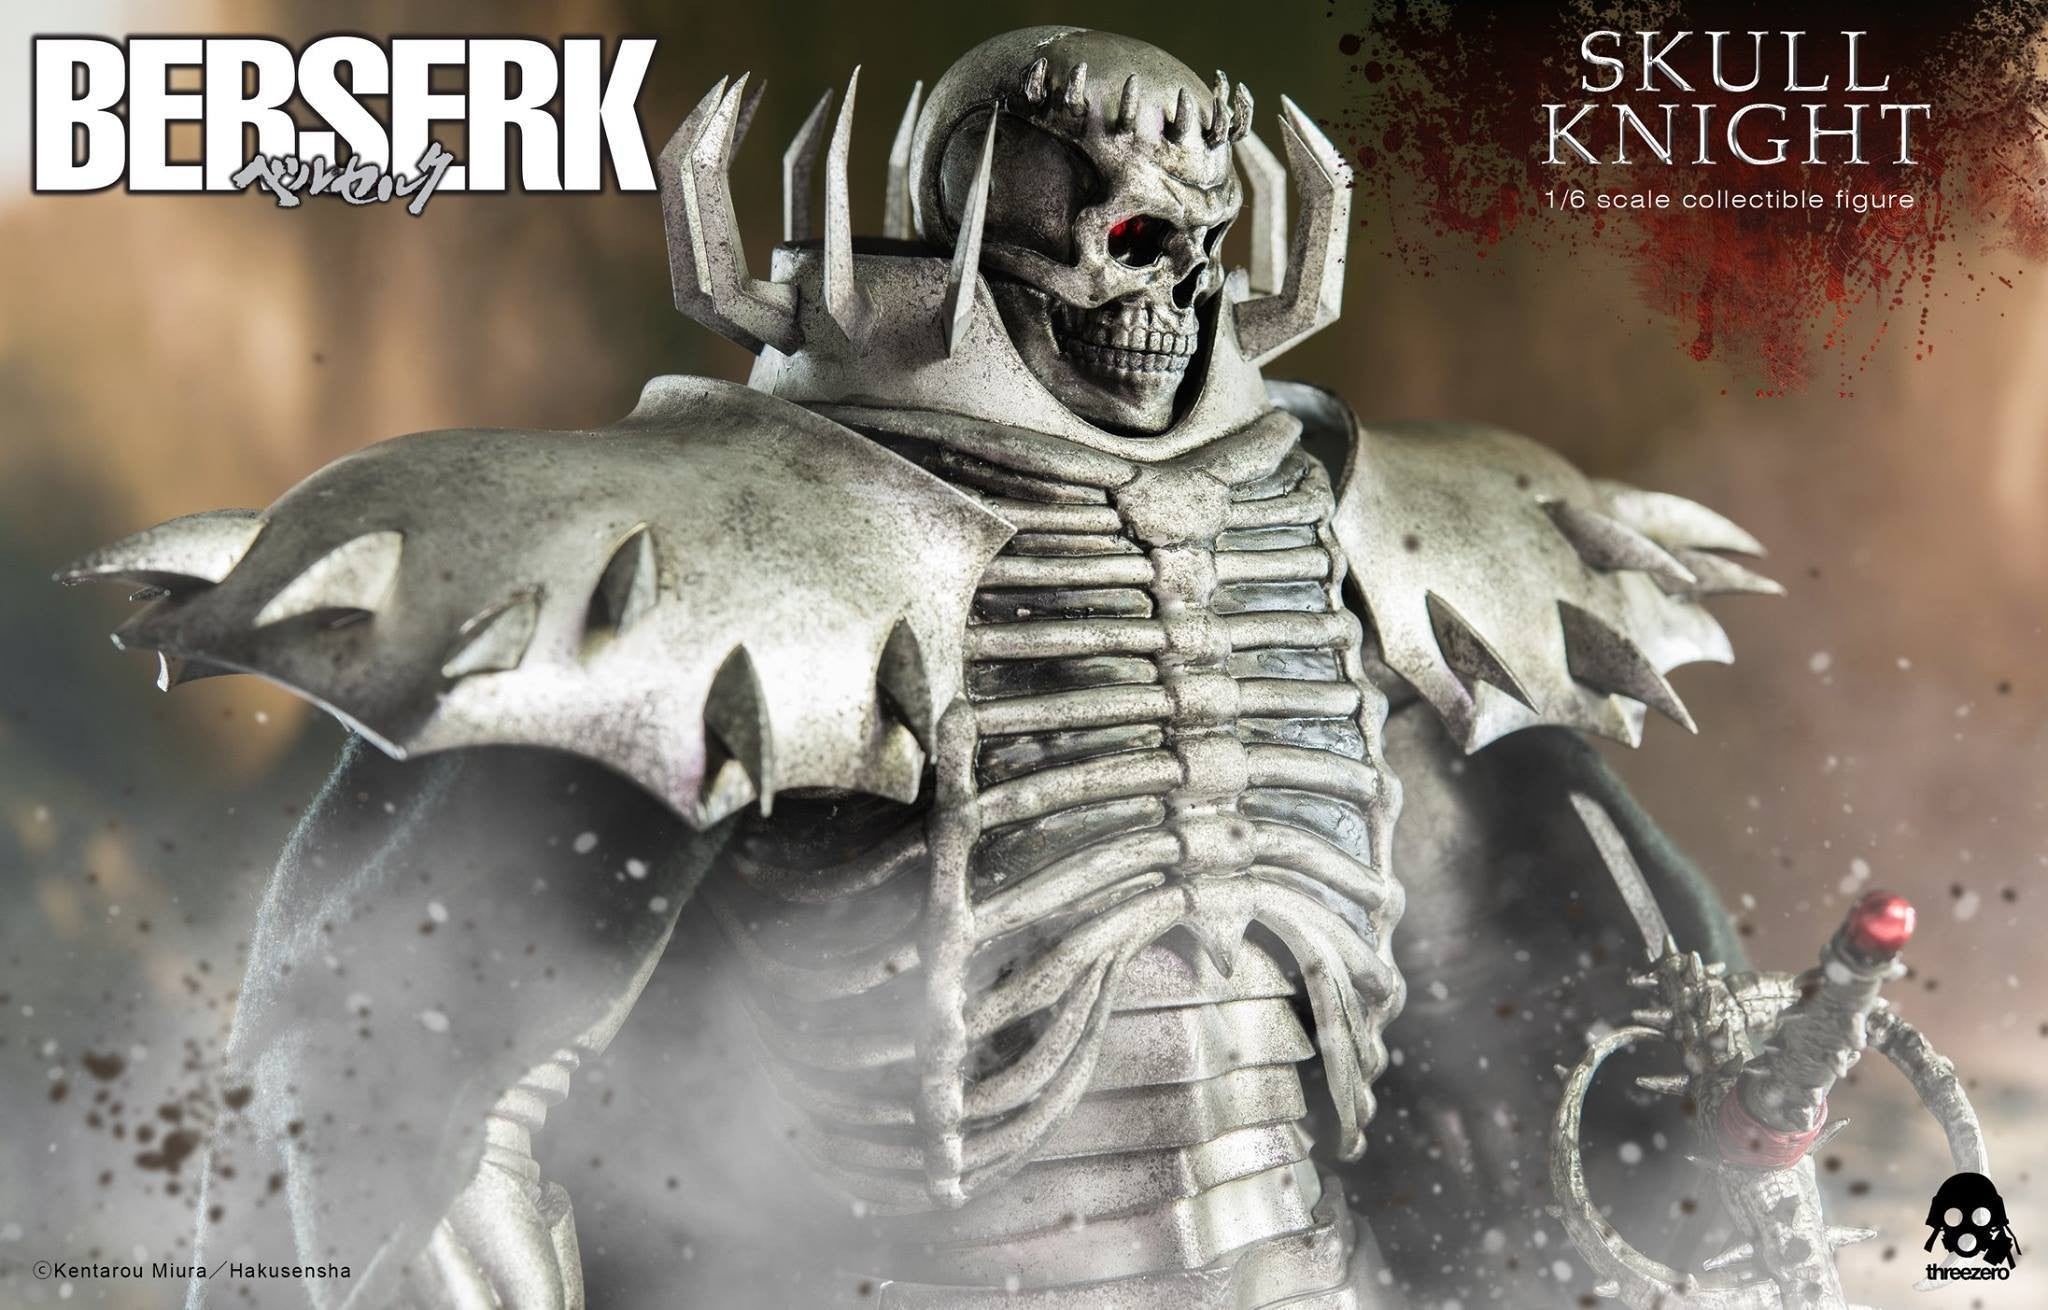 Threezero - Berserk - Skull Knight - Marvelous Toys - 2